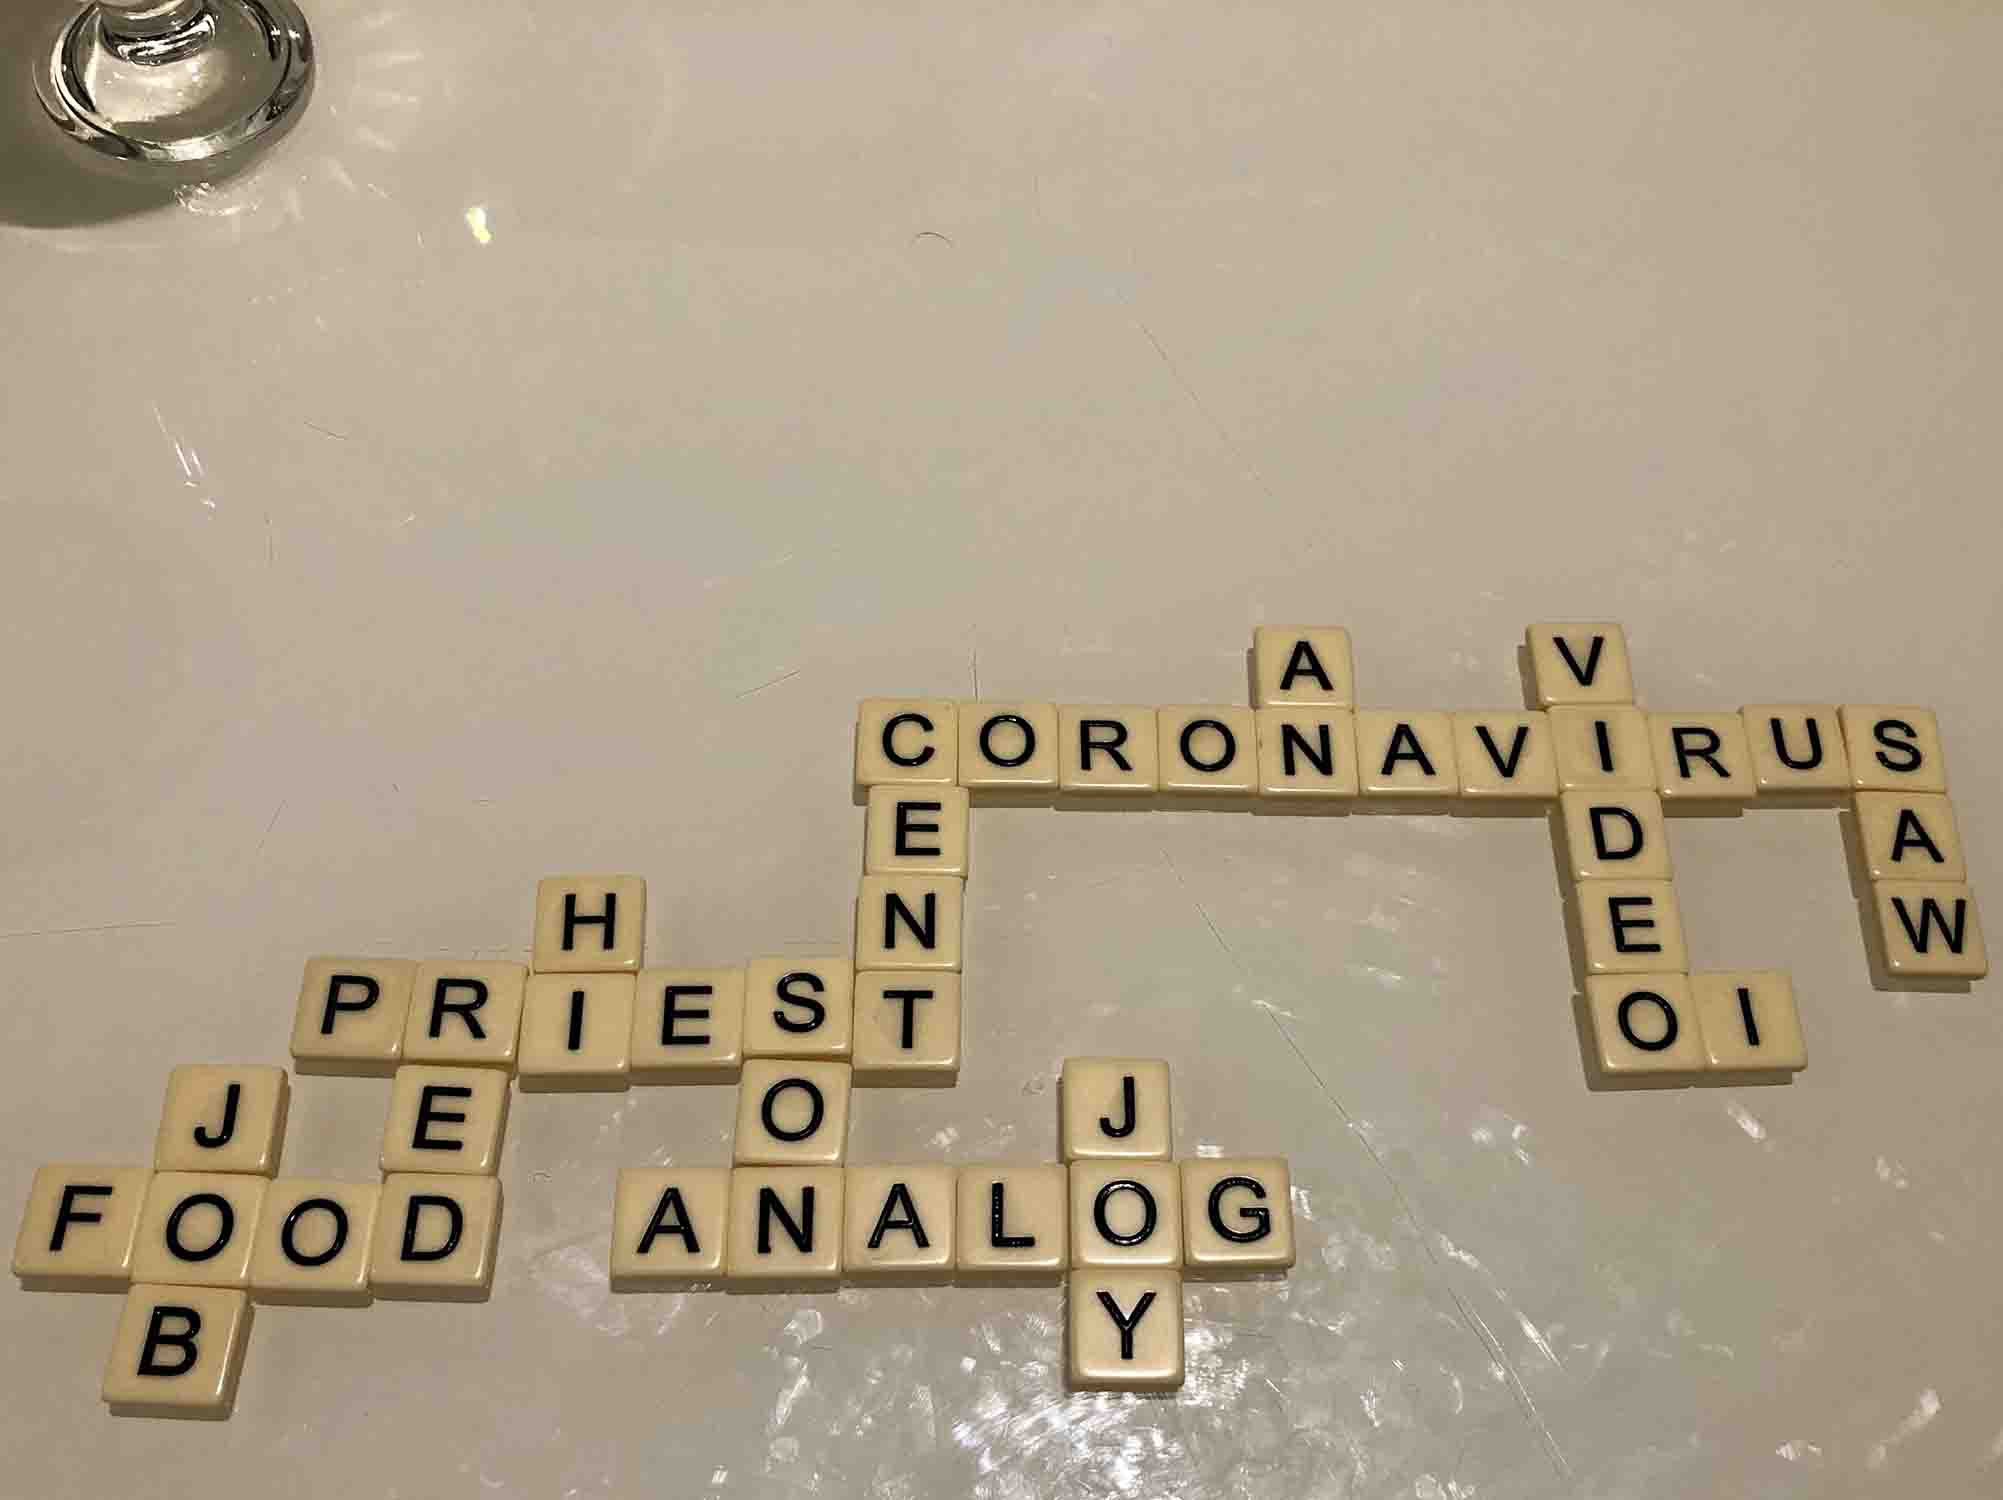 CORONAVIRUS spelt out in a game of Bananagrams